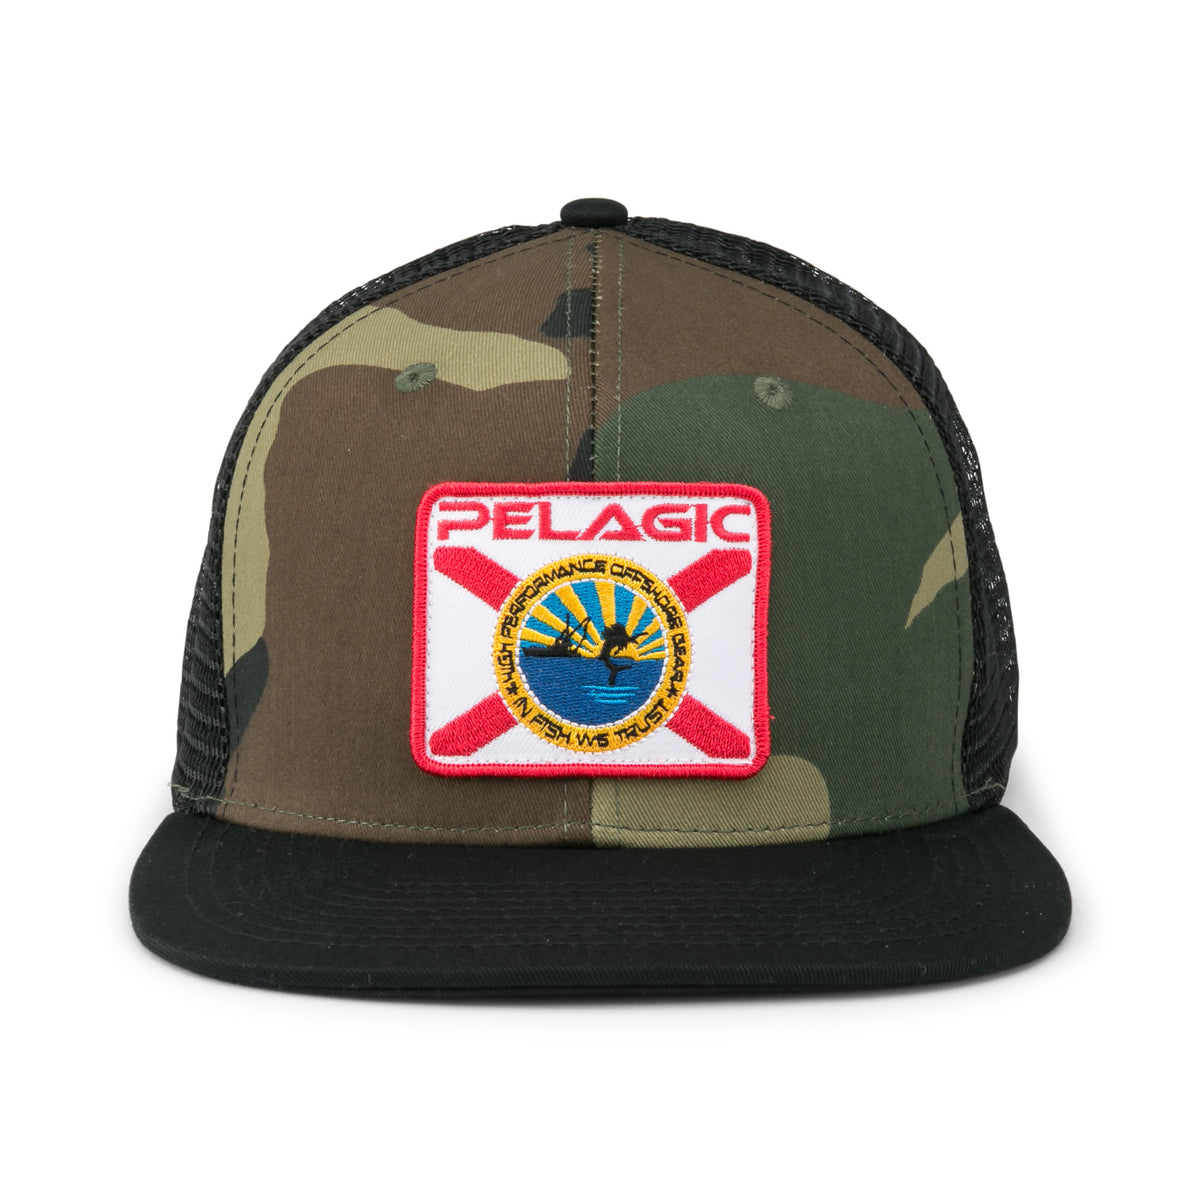 Sailfish Republic Snapback Fishing Hat Big Image - 2